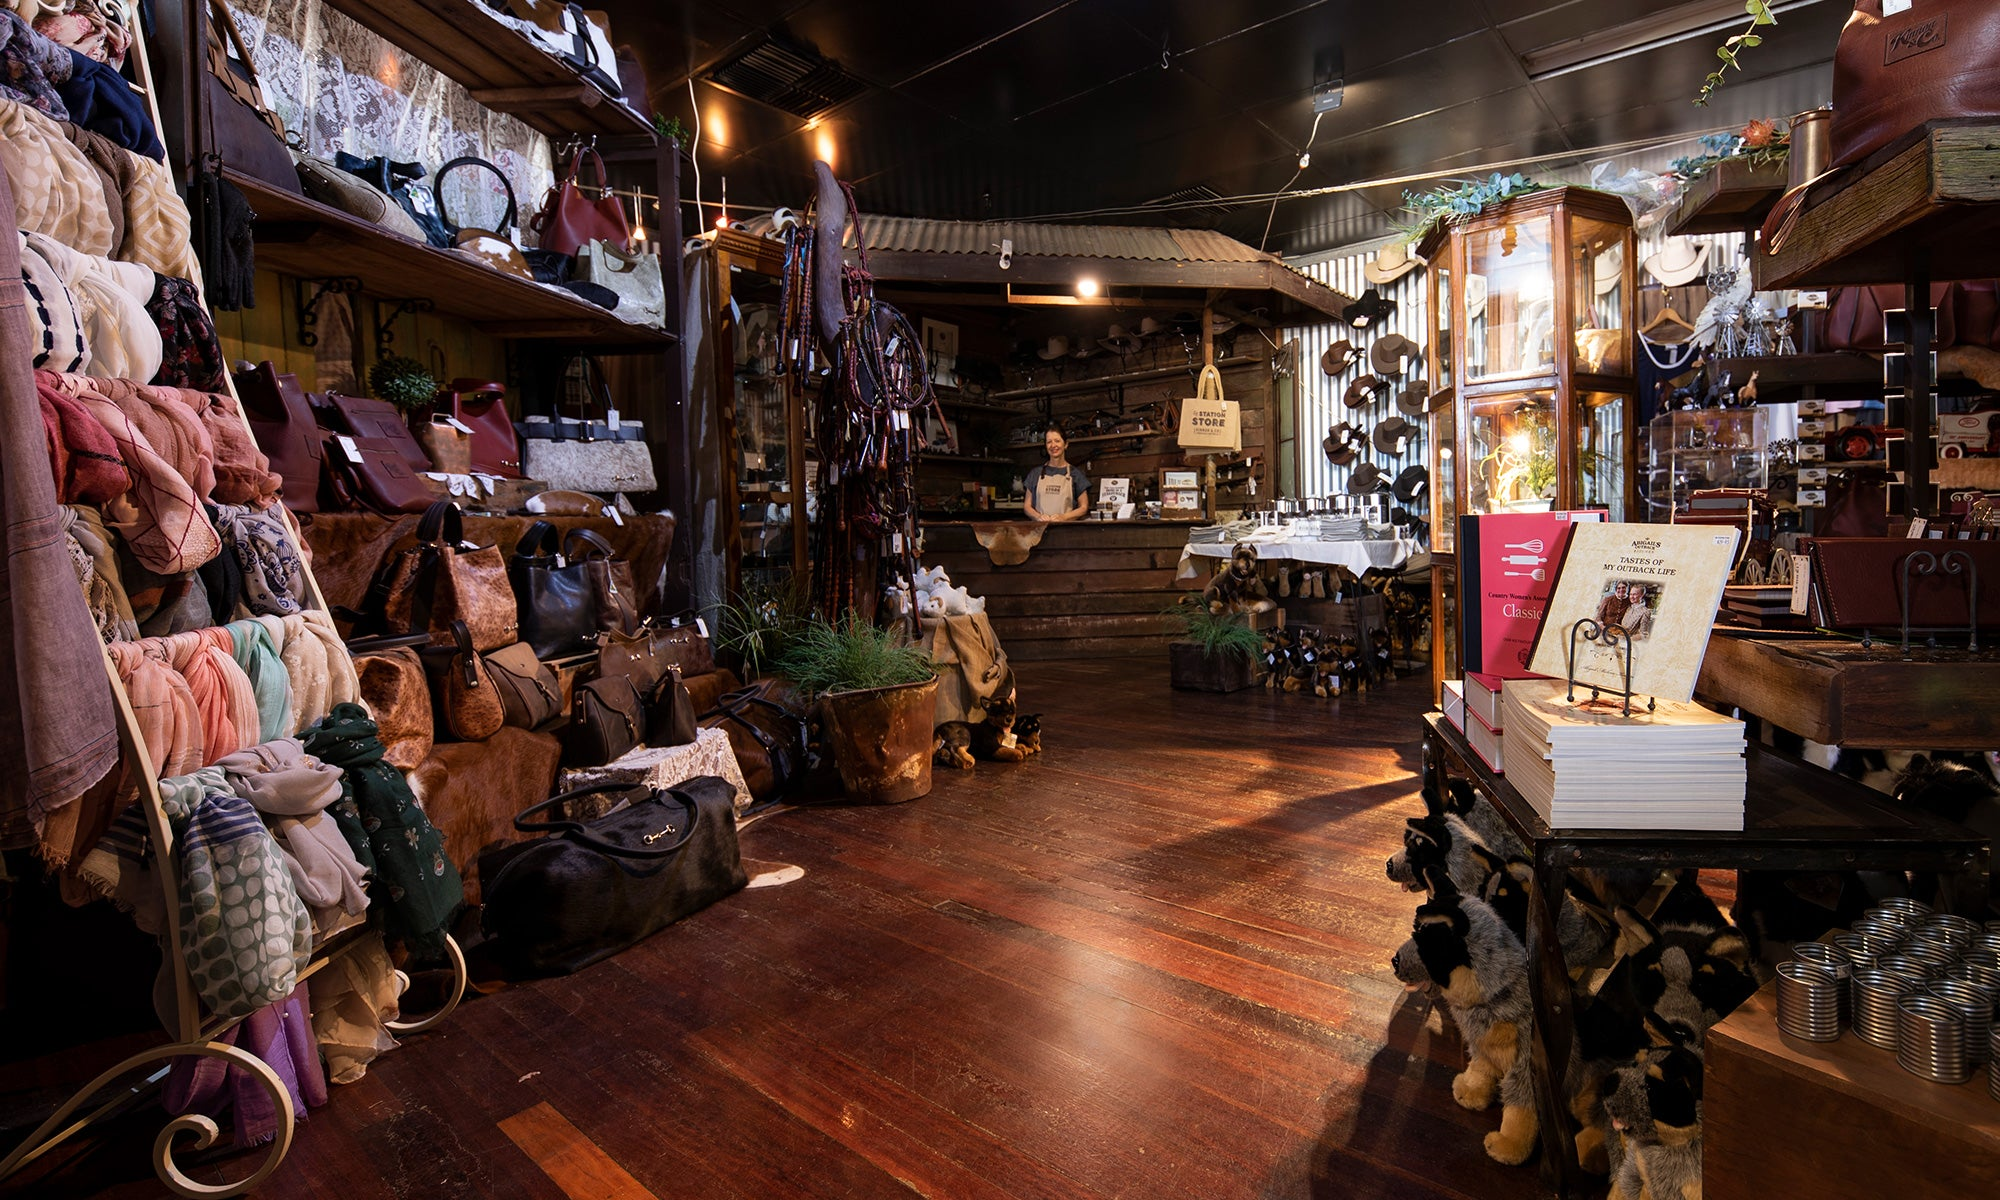 Discover The Station Store - an outback shopping emporium in the heart of Longeach, Queensland